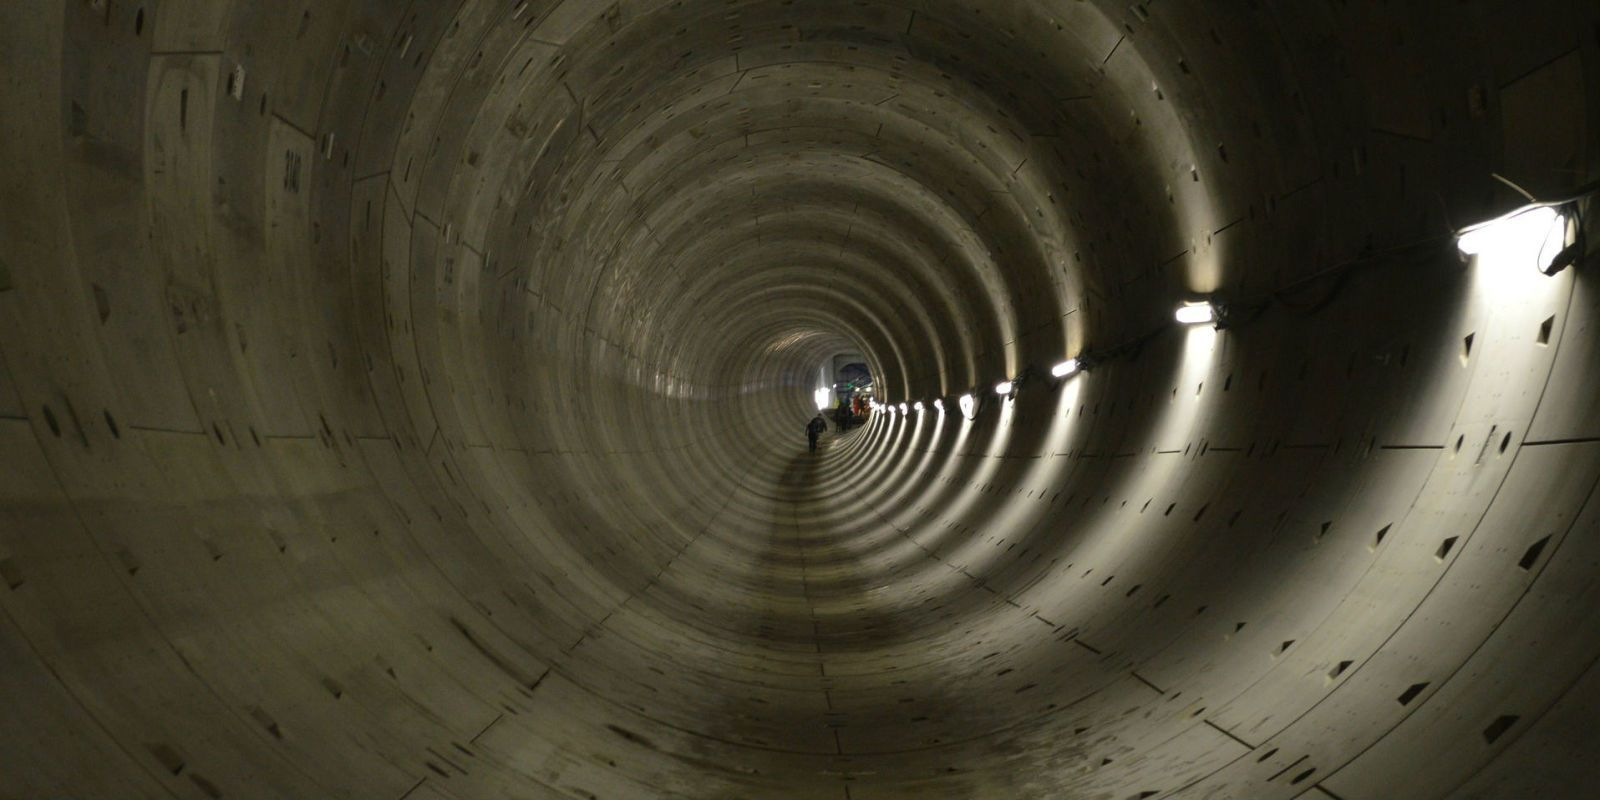 Scientists Have Built a One-Way Tunnel for Sound